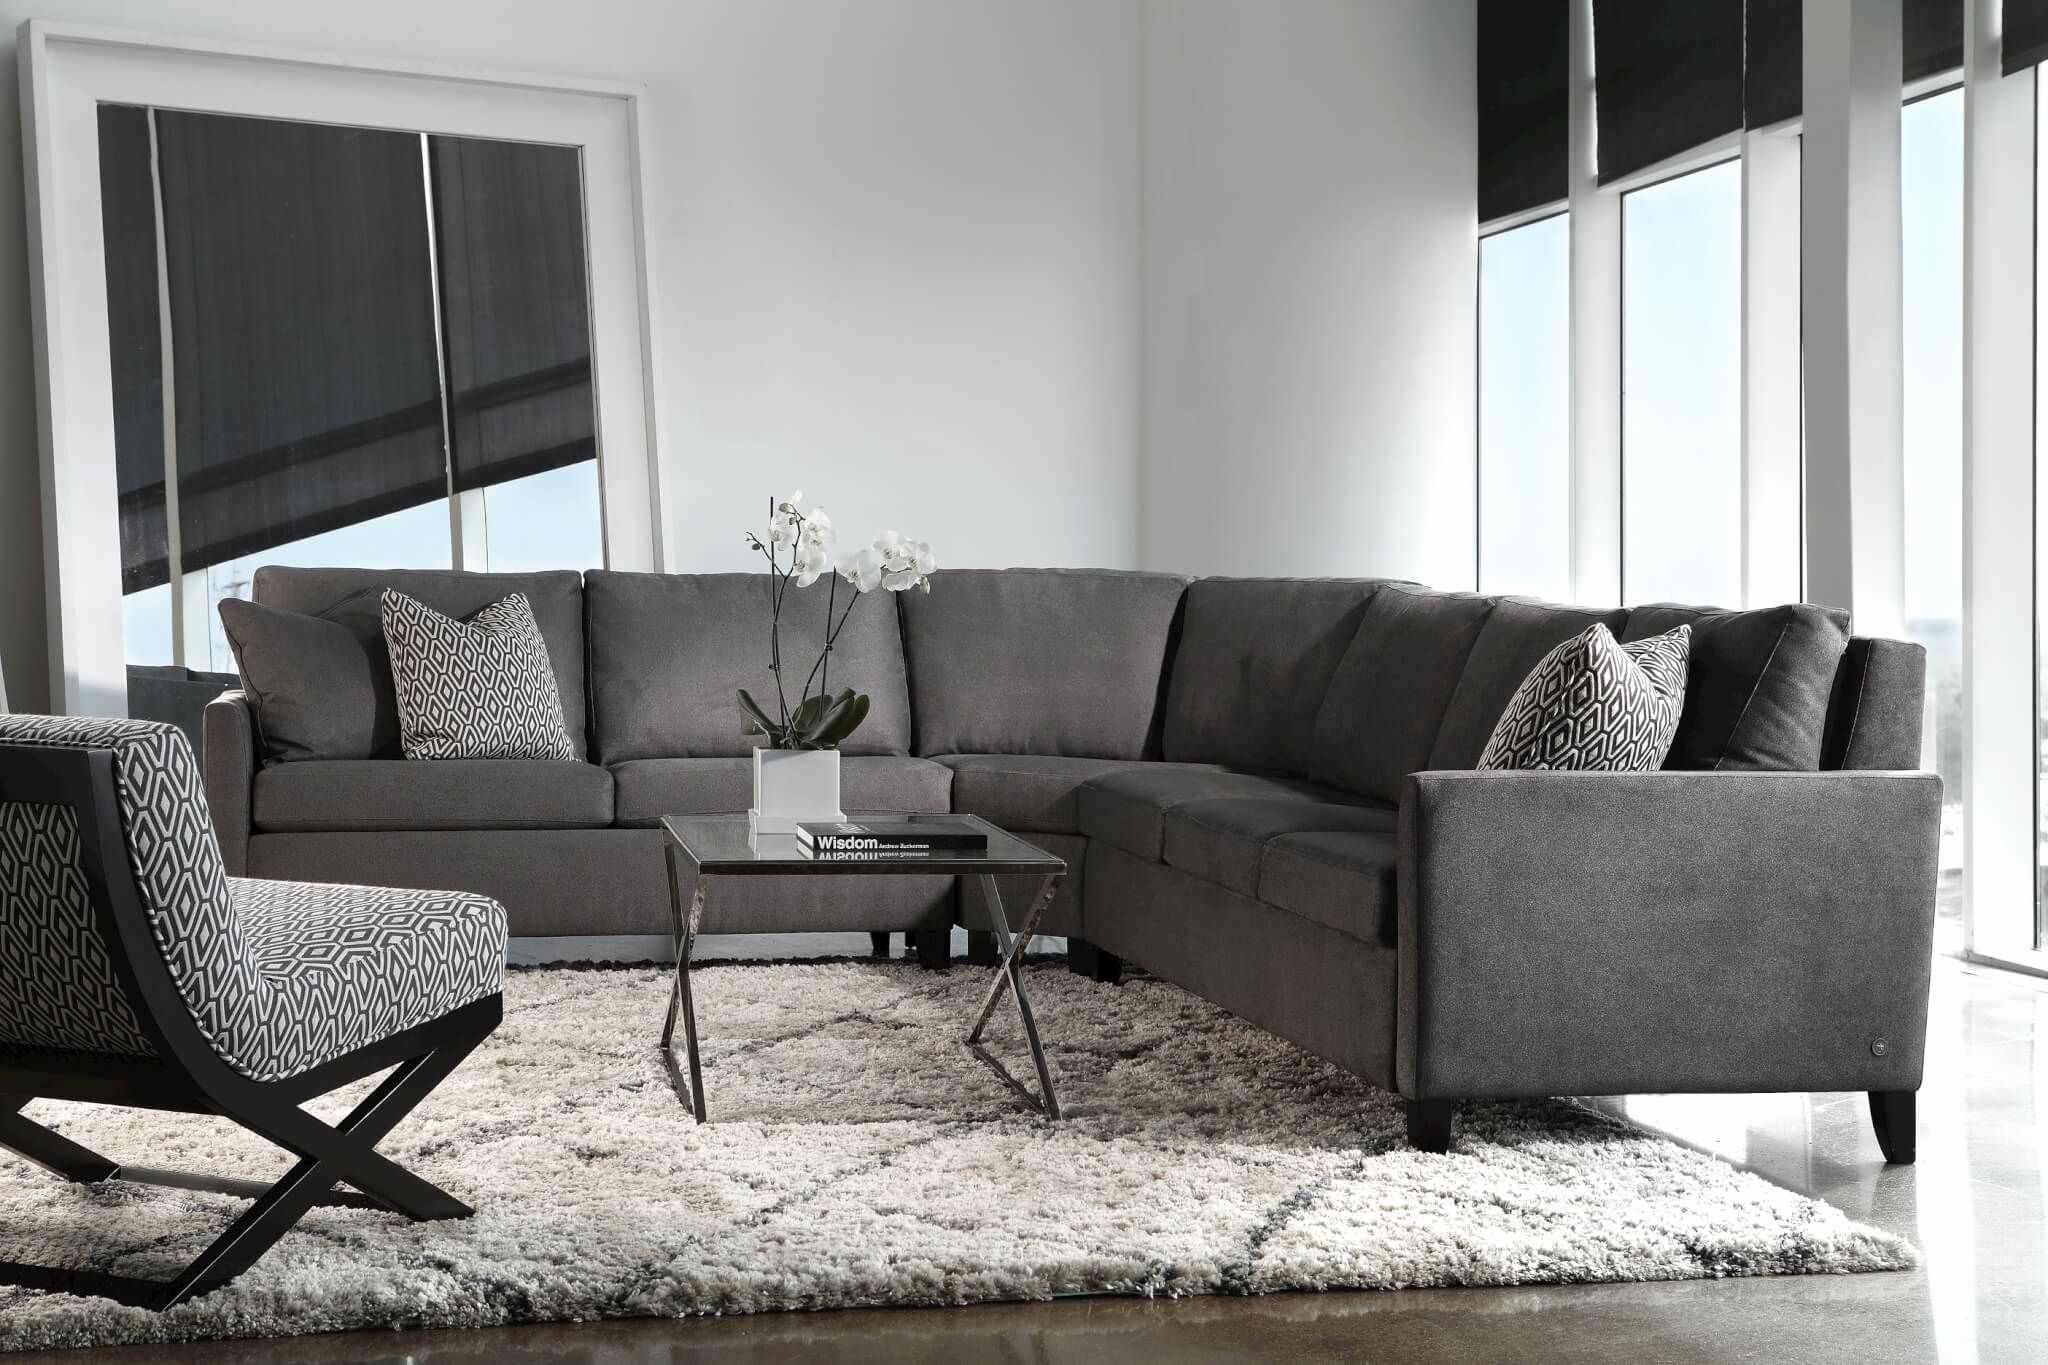 Unique Armless Sleeper Sofa 2018 – Couches Ideas Throughout Panama City Fl Sectional Sofas (Photo 6 of 10)